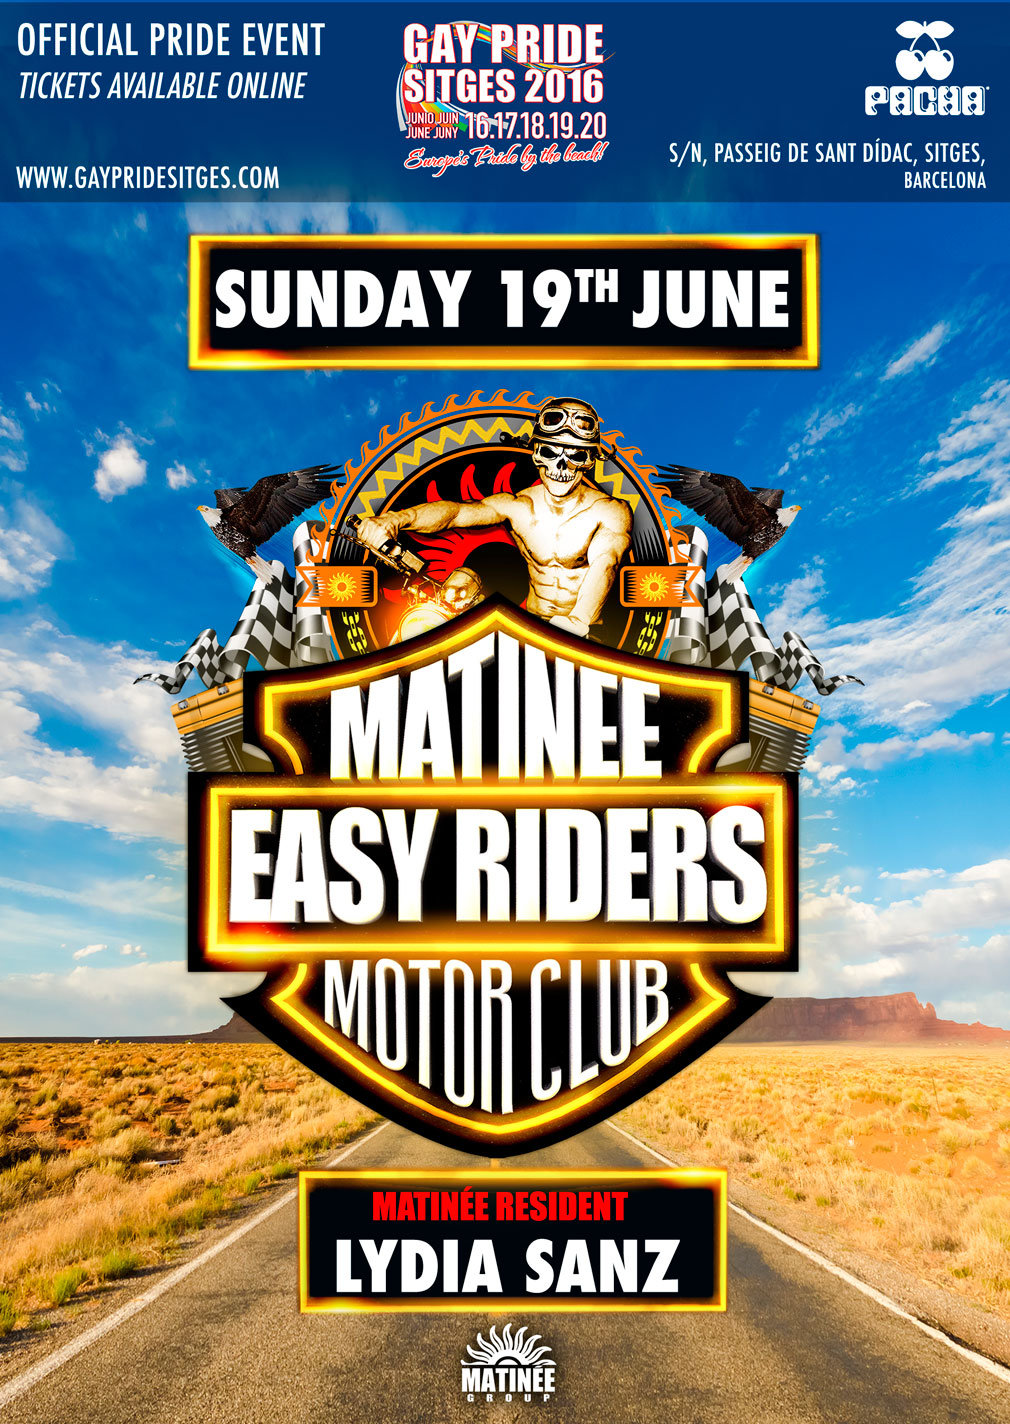 Matinee Easy Riders